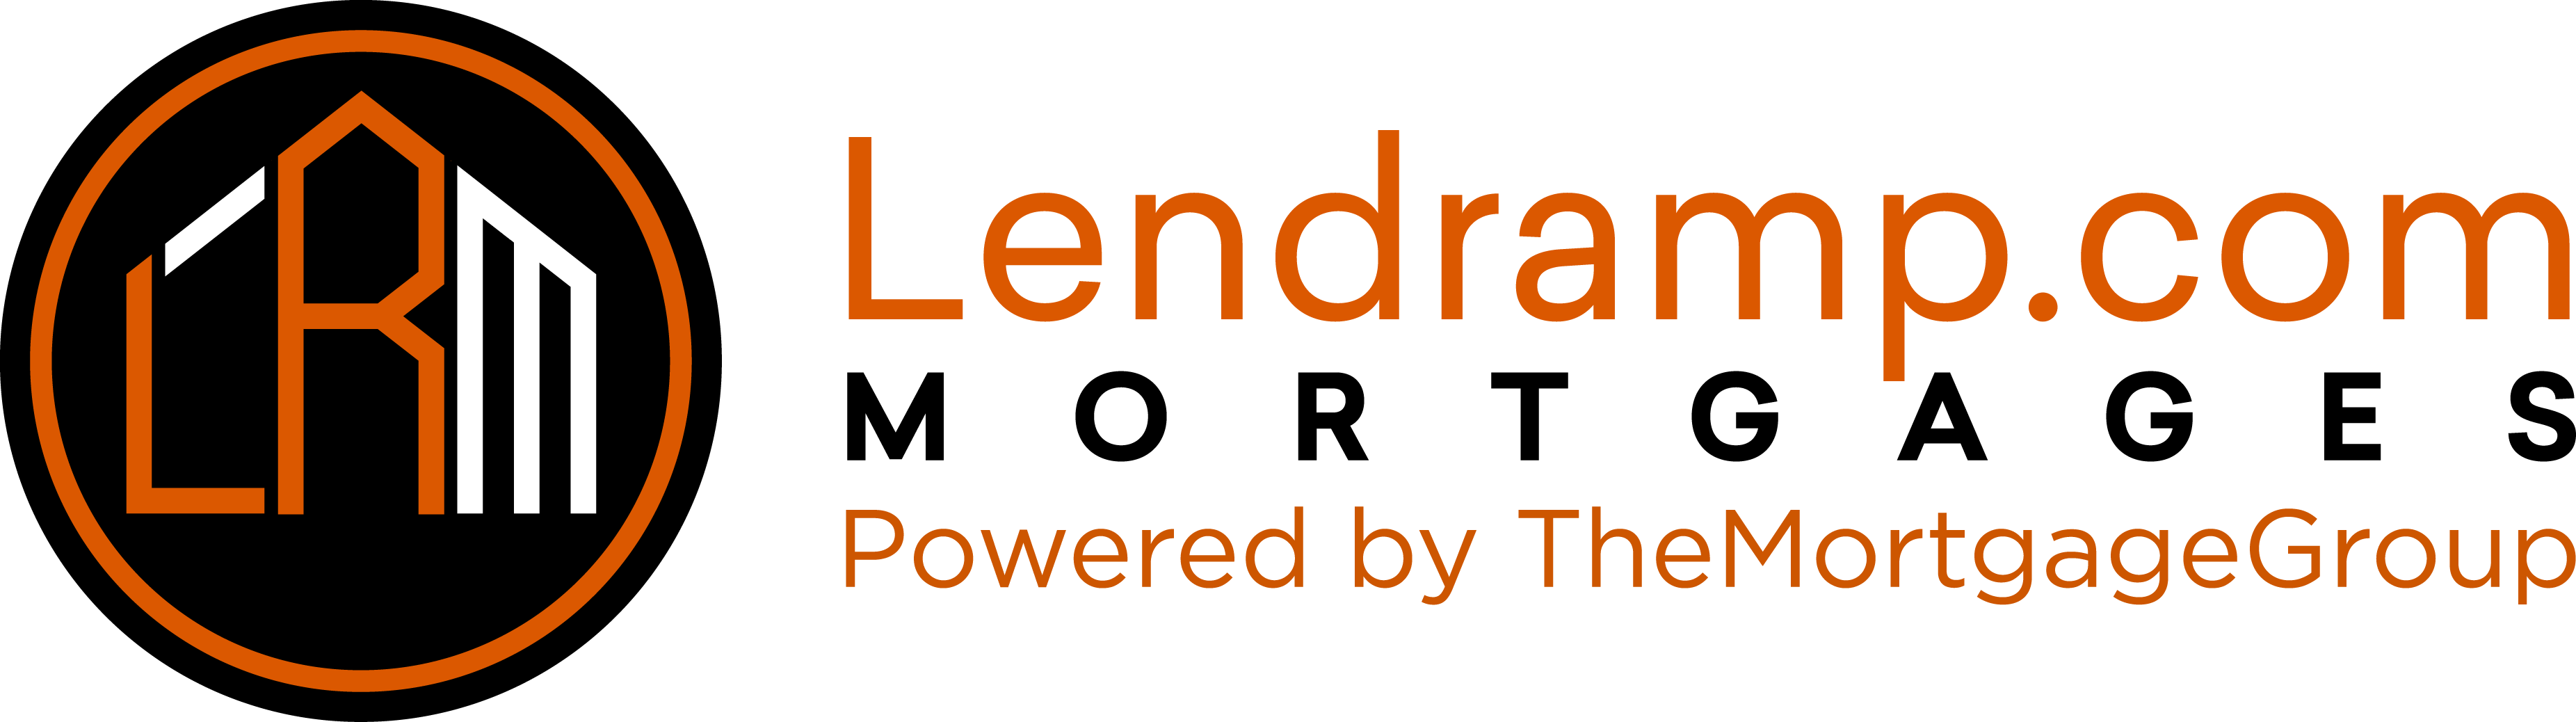 Lendramp.com Lowest Mortgage rates in Canada Logo